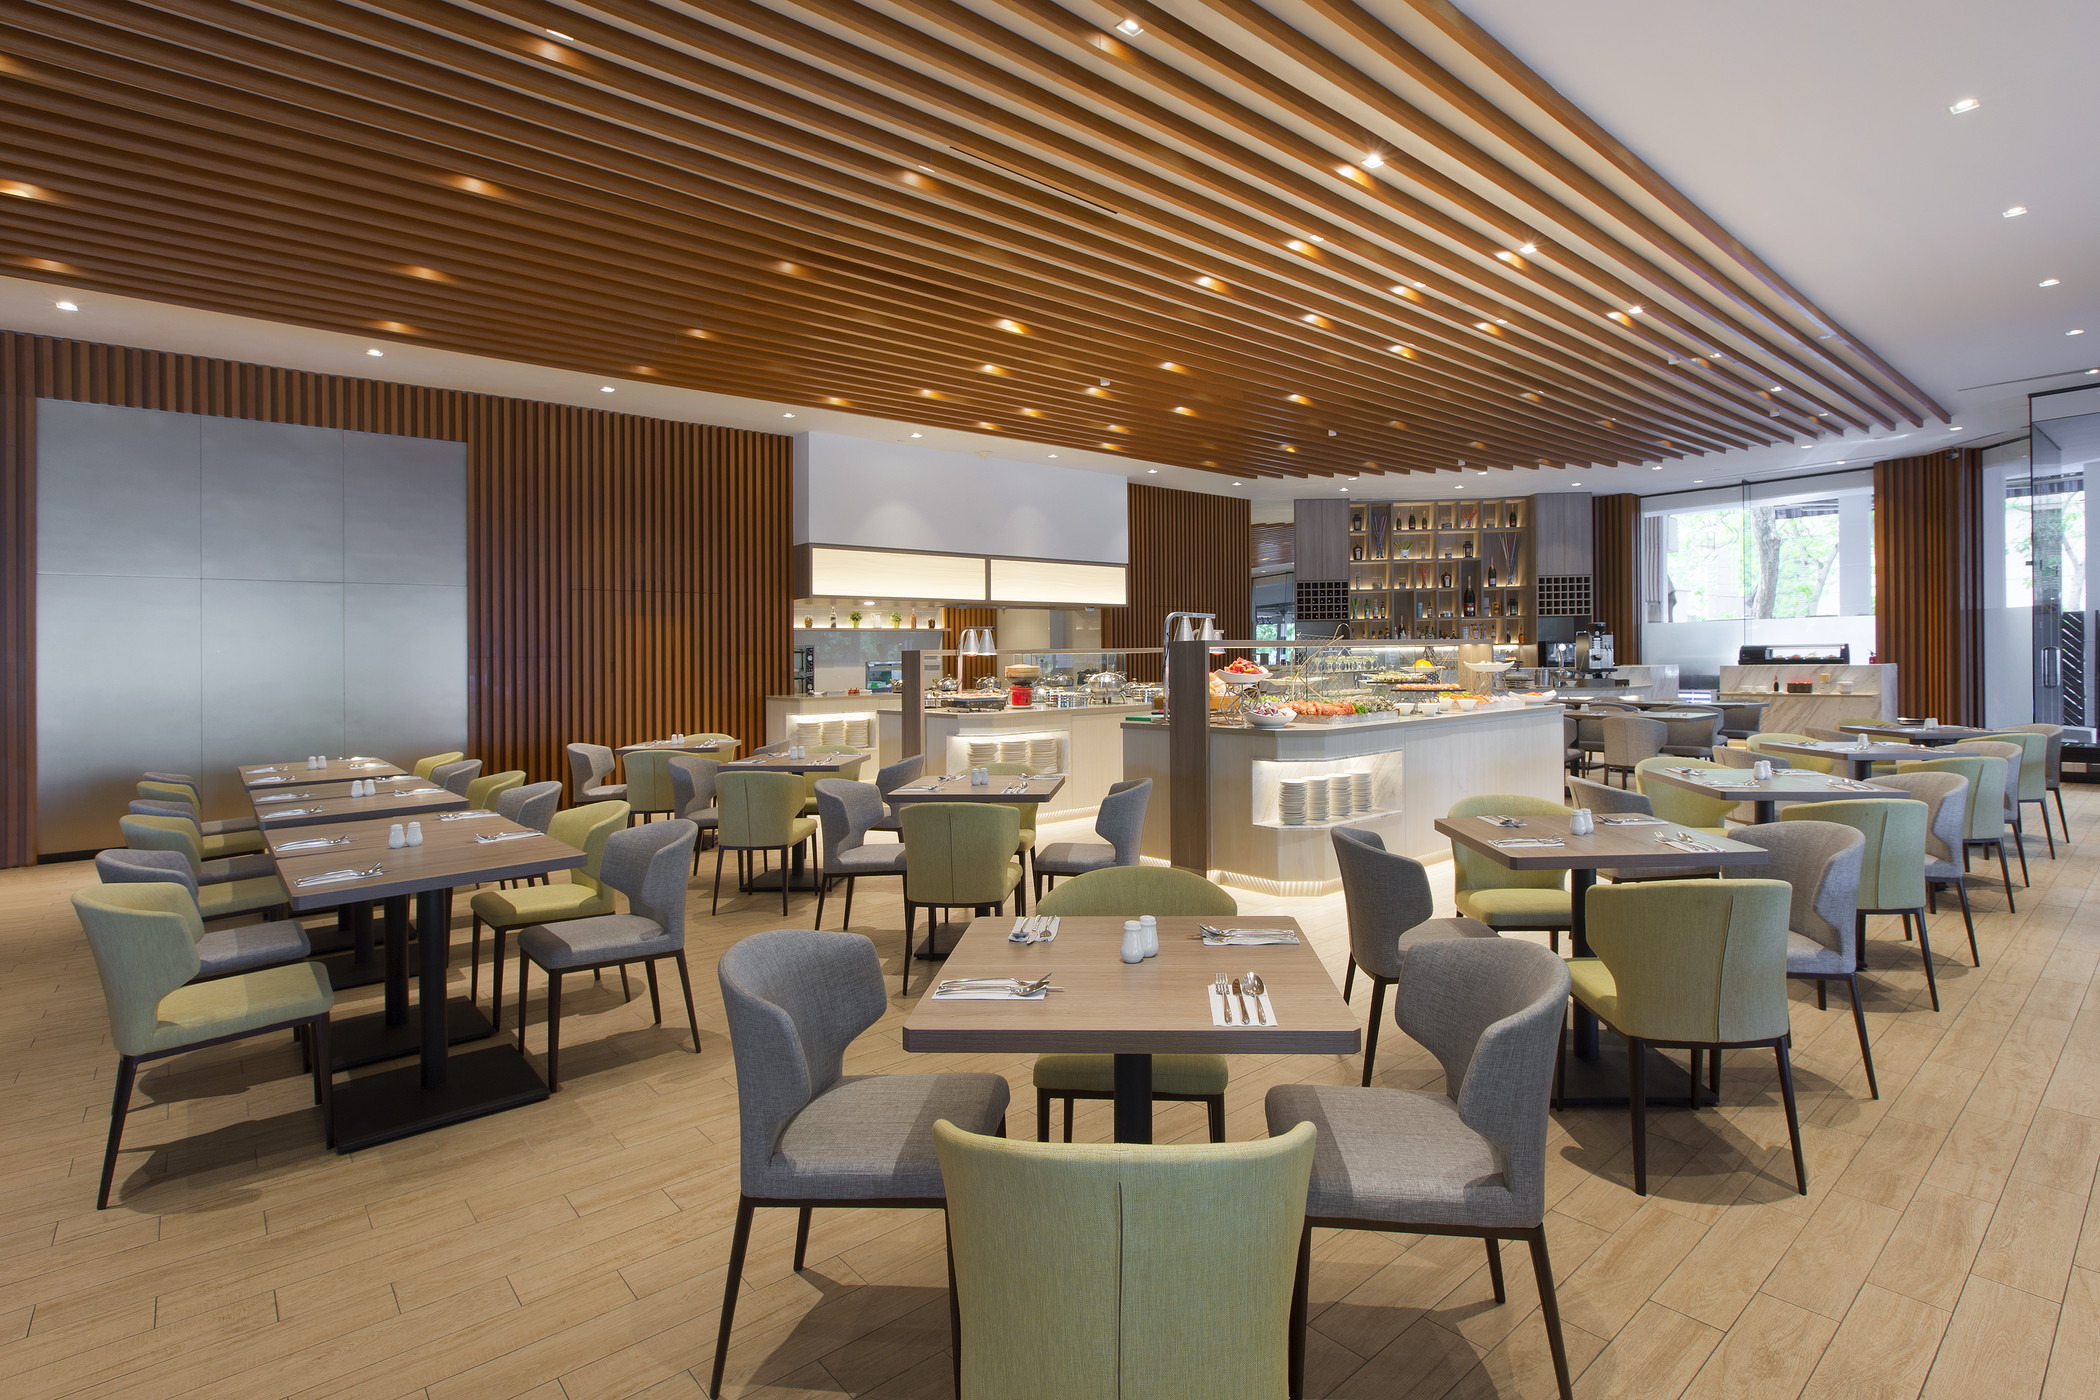 The Eatery | Photo Credit: Four Points by Sheraton Singapore, Riverview